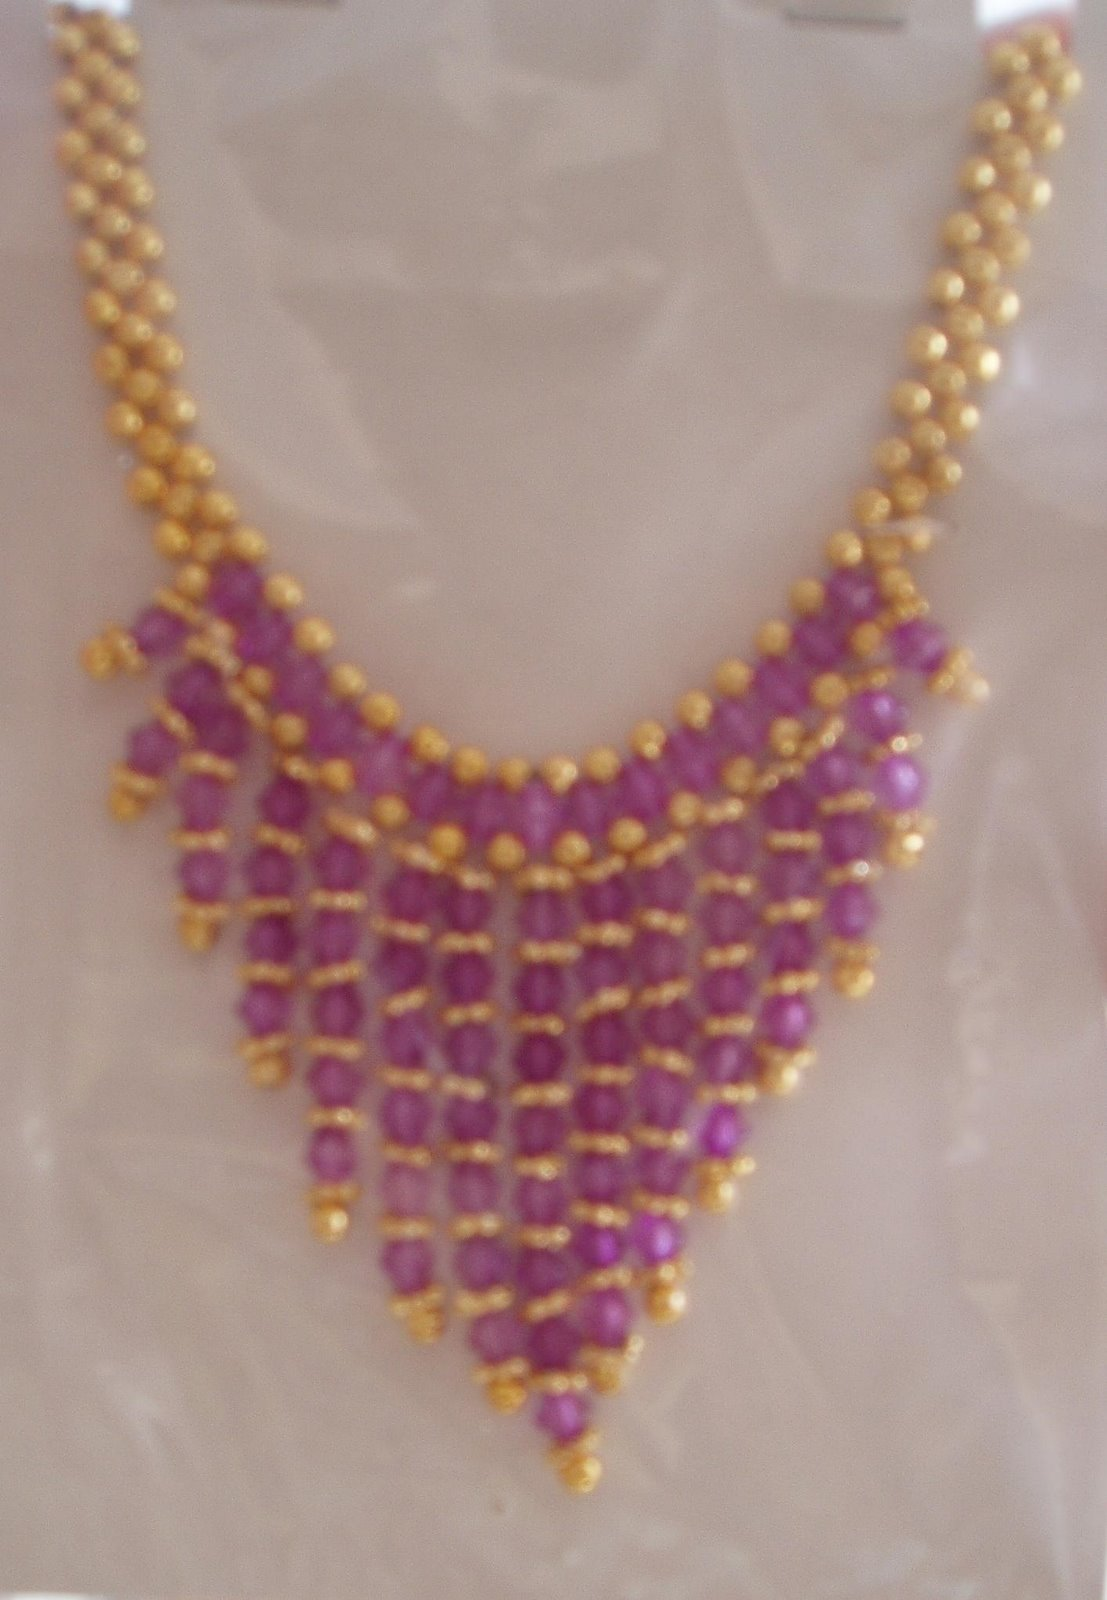 Easy Crafts - Explore your creativity: More Jewellery Patterns